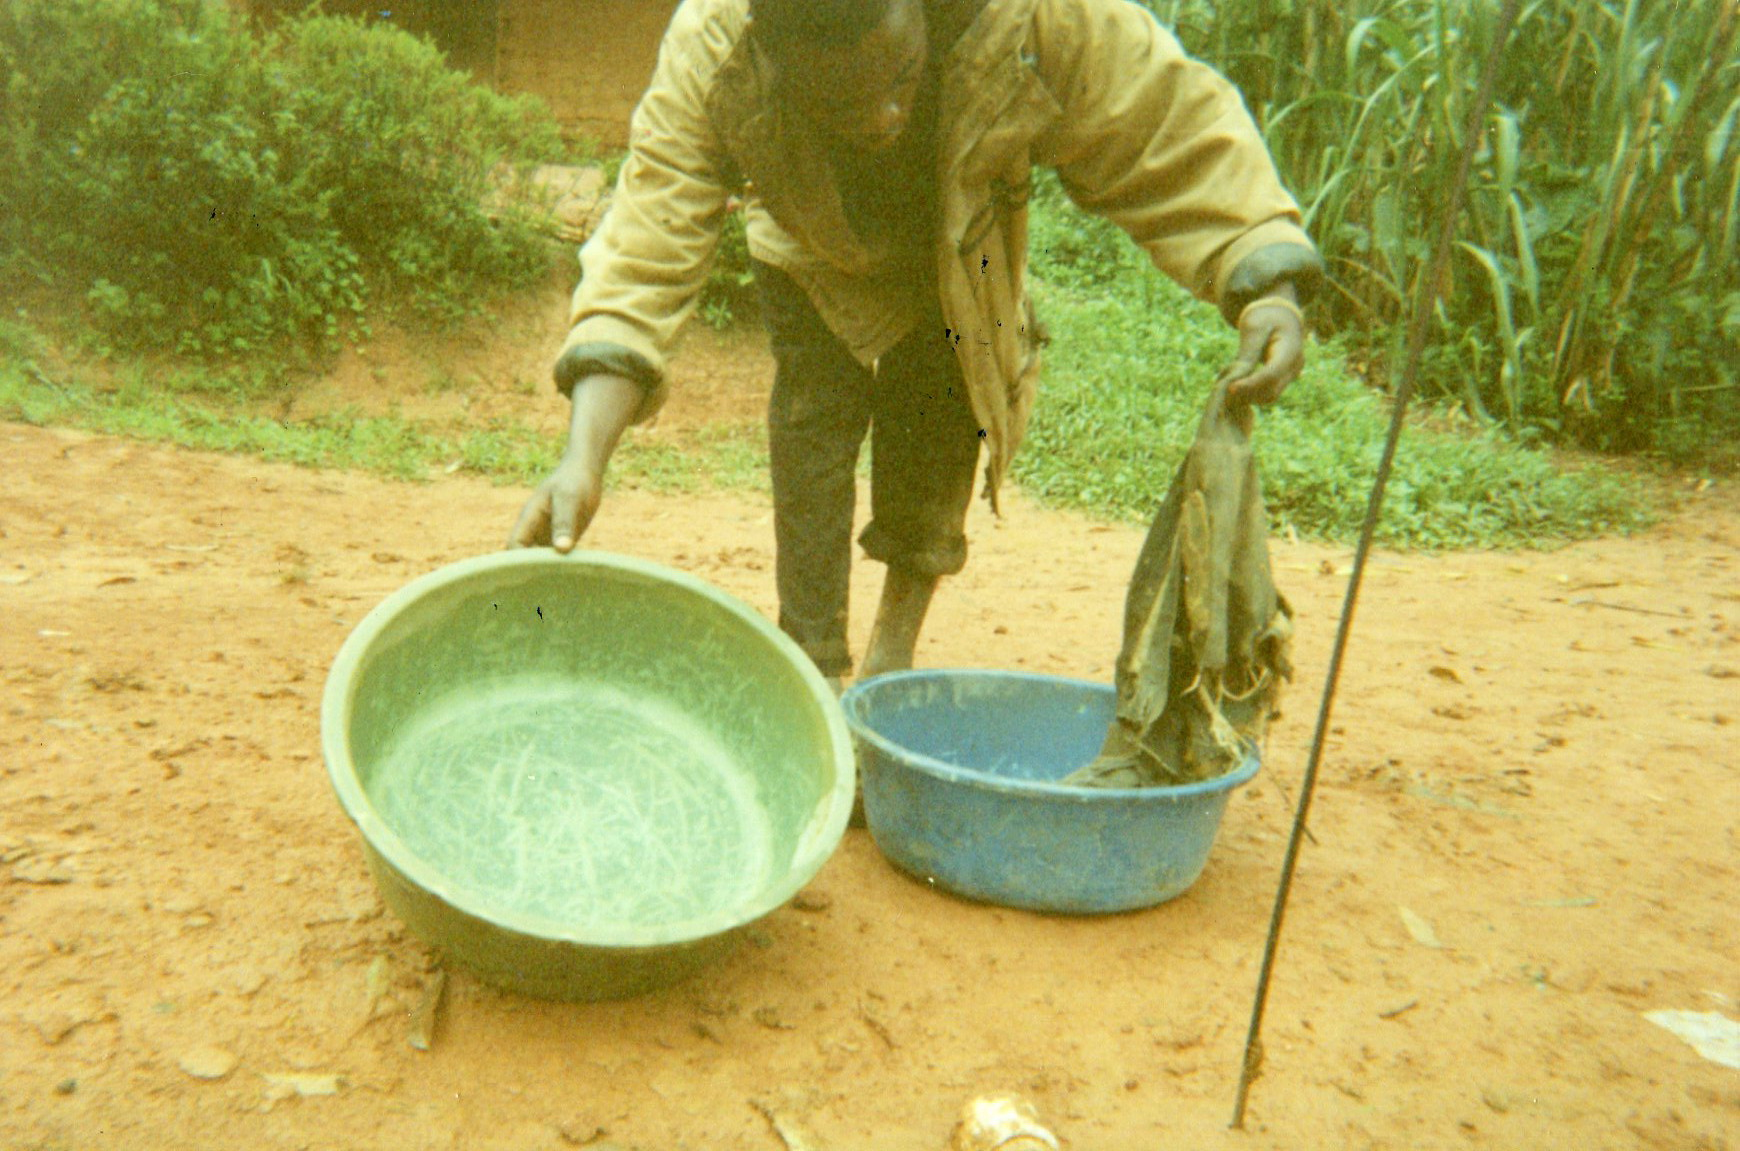 """It is not good for the ex-combatants to rely on artisanal mining of gold as their main activity.                Normal.dotm    0    0    1    14    80    Harvard College    1    1    98    12.0                        0    false          18 pt    18 pt    0    0       false    false    false                                           /* Style Definitions */ table.MsoNormalTable {mso-style-name:""""Table Normal""""; mso-tstyle-rowband-size:0; mso-tstyle-colband-size:0; mso-style-noshow:yes; mso-style-parent:""""""""; mso-padding-alt:0in 5.4pt 0in 5.4pt; mso-para-margin-top:0in; mso-para-margin-right:0in; mso-para-margin-bottom:10.0pt; mso-para-margin-left:0in; line-height:115%; mso-pagination:widow-orphan; font-size:12.0pt; font-family:""""Times New Roman""""; mso-ascii-font-family:Calibri; mso-ascii-theme-font:minor-latin; mso-fareast-font-family:""""Times New Roman""""; mso-fareast-theme-font:minor-fareast; mso-hansi-font-family:Calibri; mso-hansi-theme-font:minor-latin;}"""